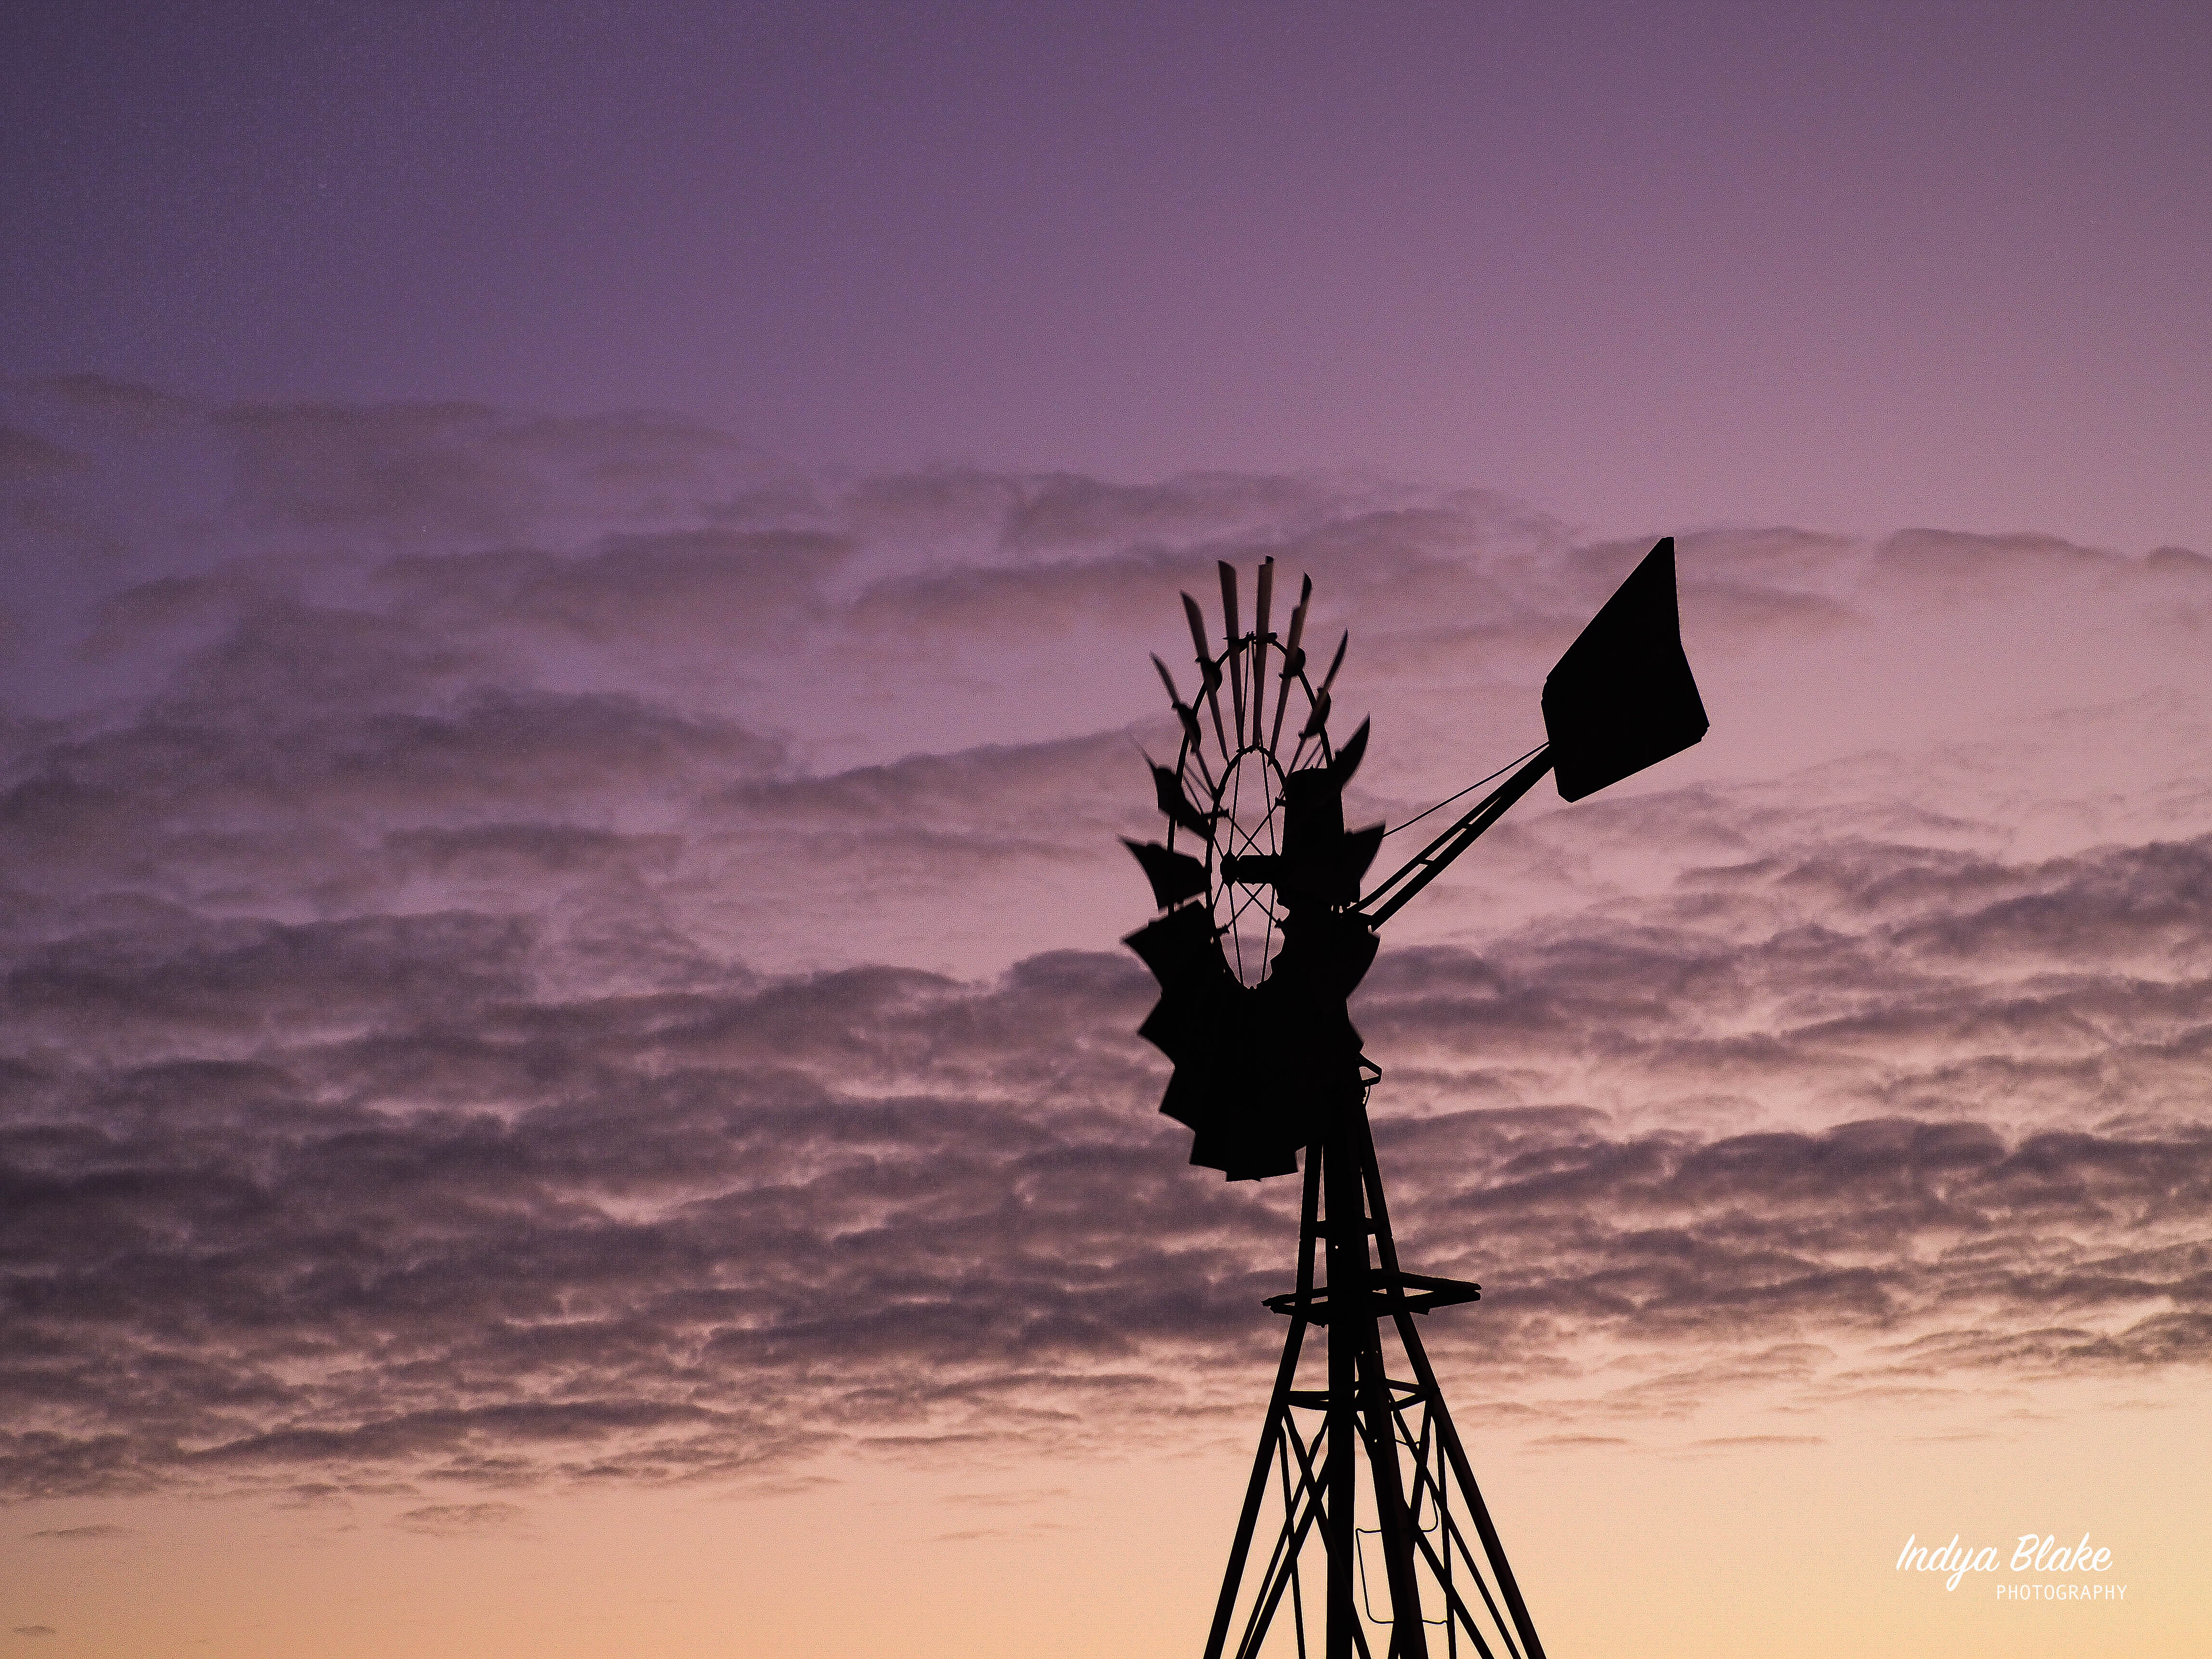 Windmill Side Profile and Sunset